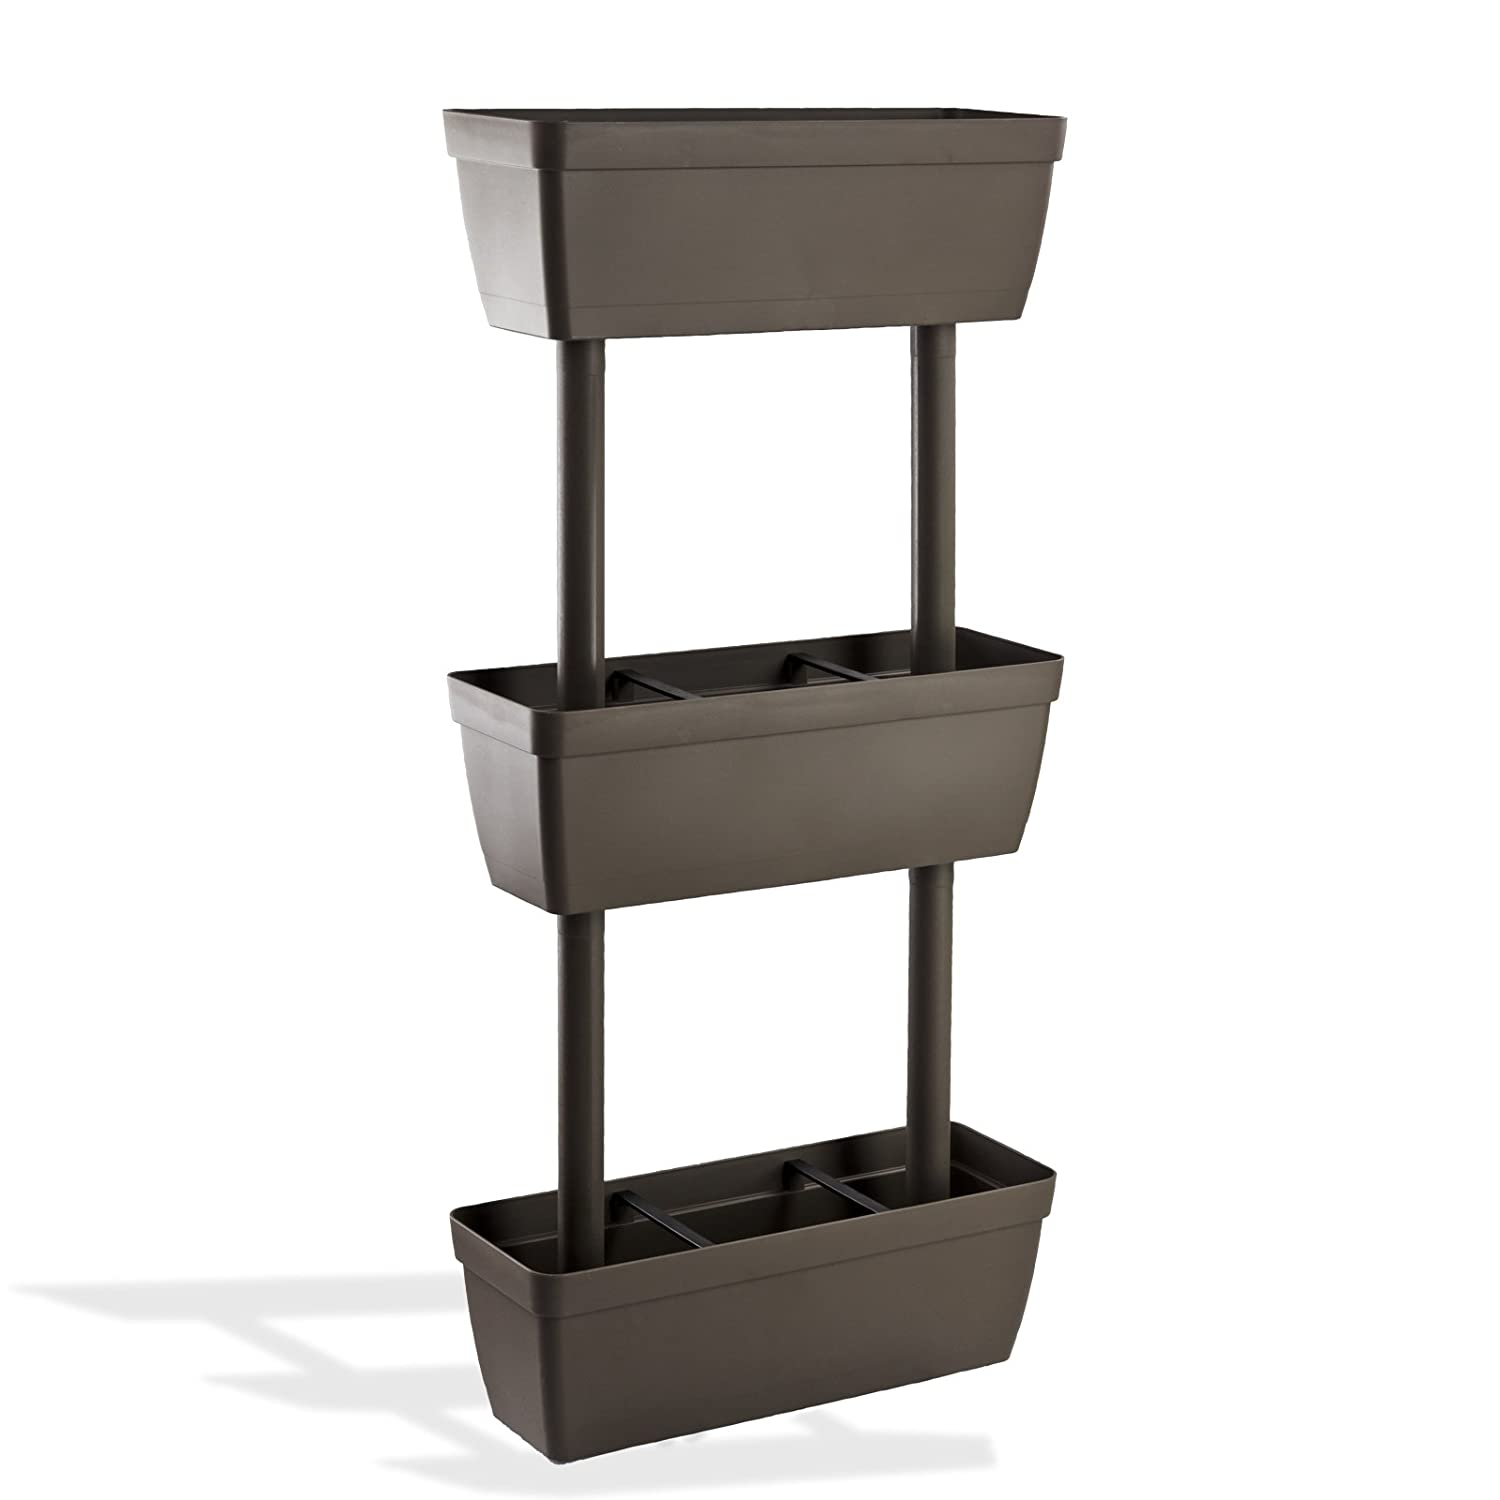 'Planter Box Lolego System 3 Stacking Planters for Art Plast S.R.L.